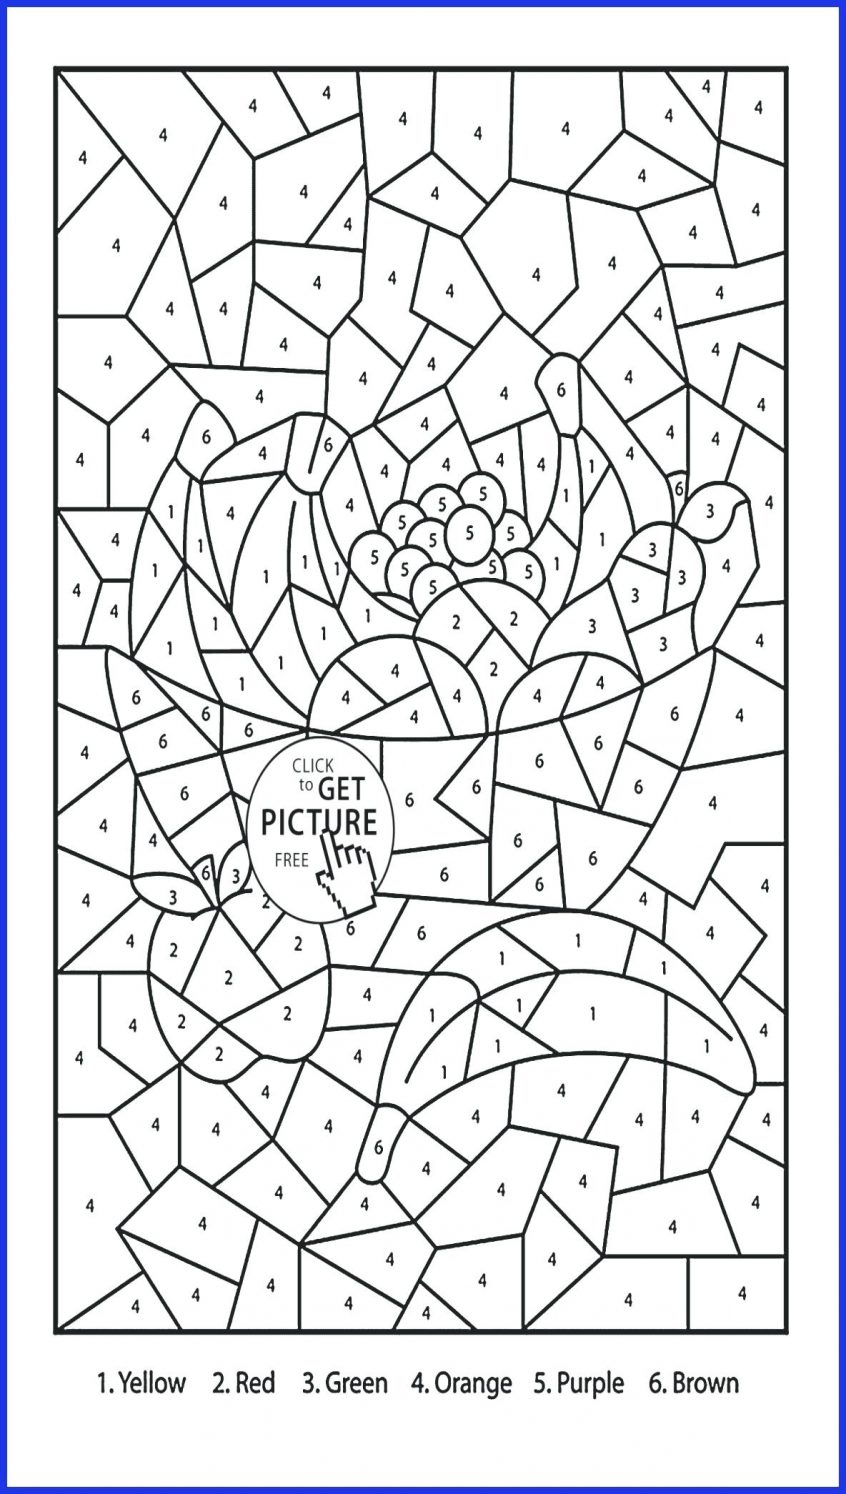 Worksheet ~ Coloring Pages With Math Printable Color